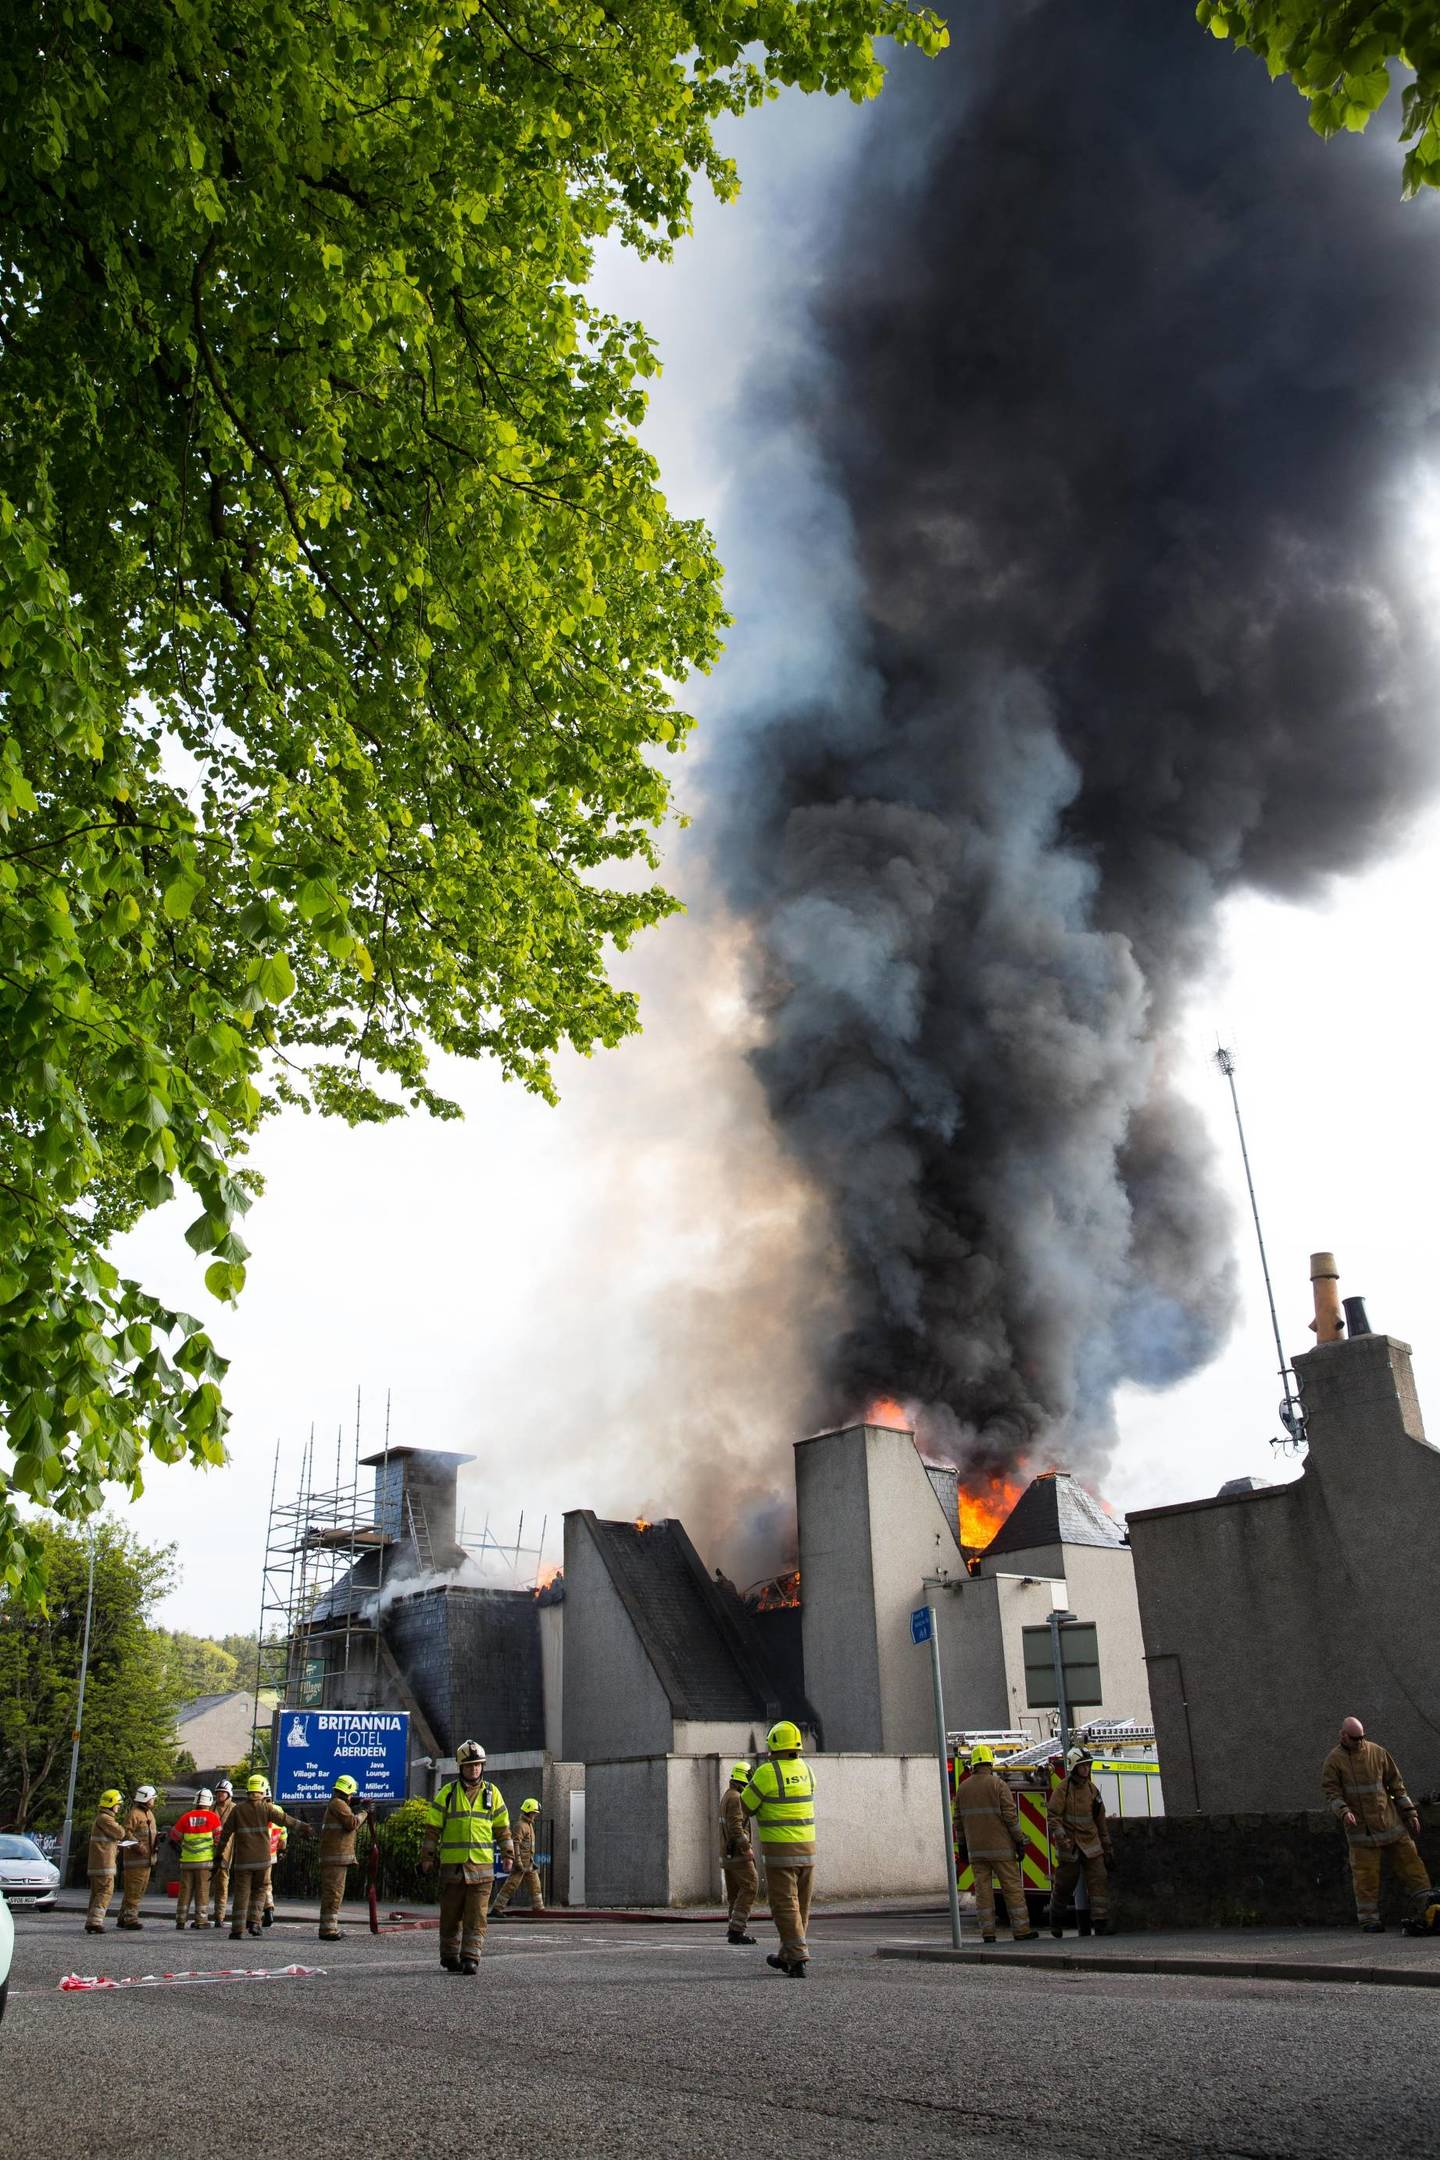 Thursday 9th June 2015, Aberdeen Scotland. More than 50 firefighters are battling a serious blaze at an Aberdeen hotel. Pictured: The fire which started inside the Britannia Hotel in Bucksburn. (Photo: Ross Johnston/Newsline Media)